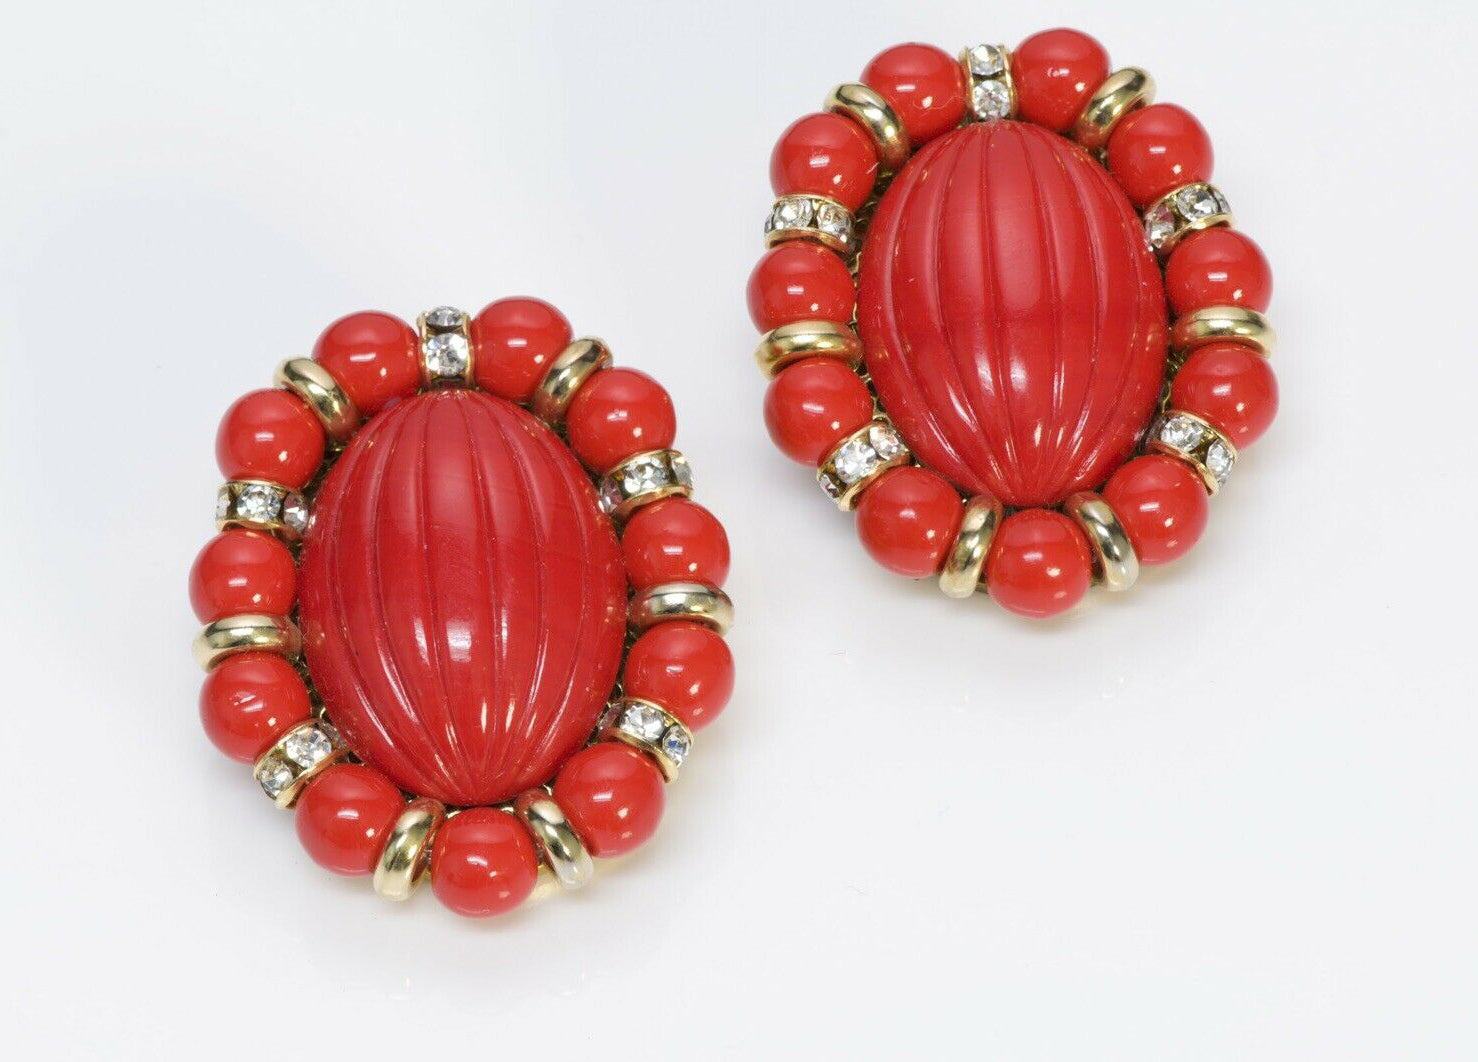 Vintage 1950's French Red Glass Beads Crystal Oval Earrings